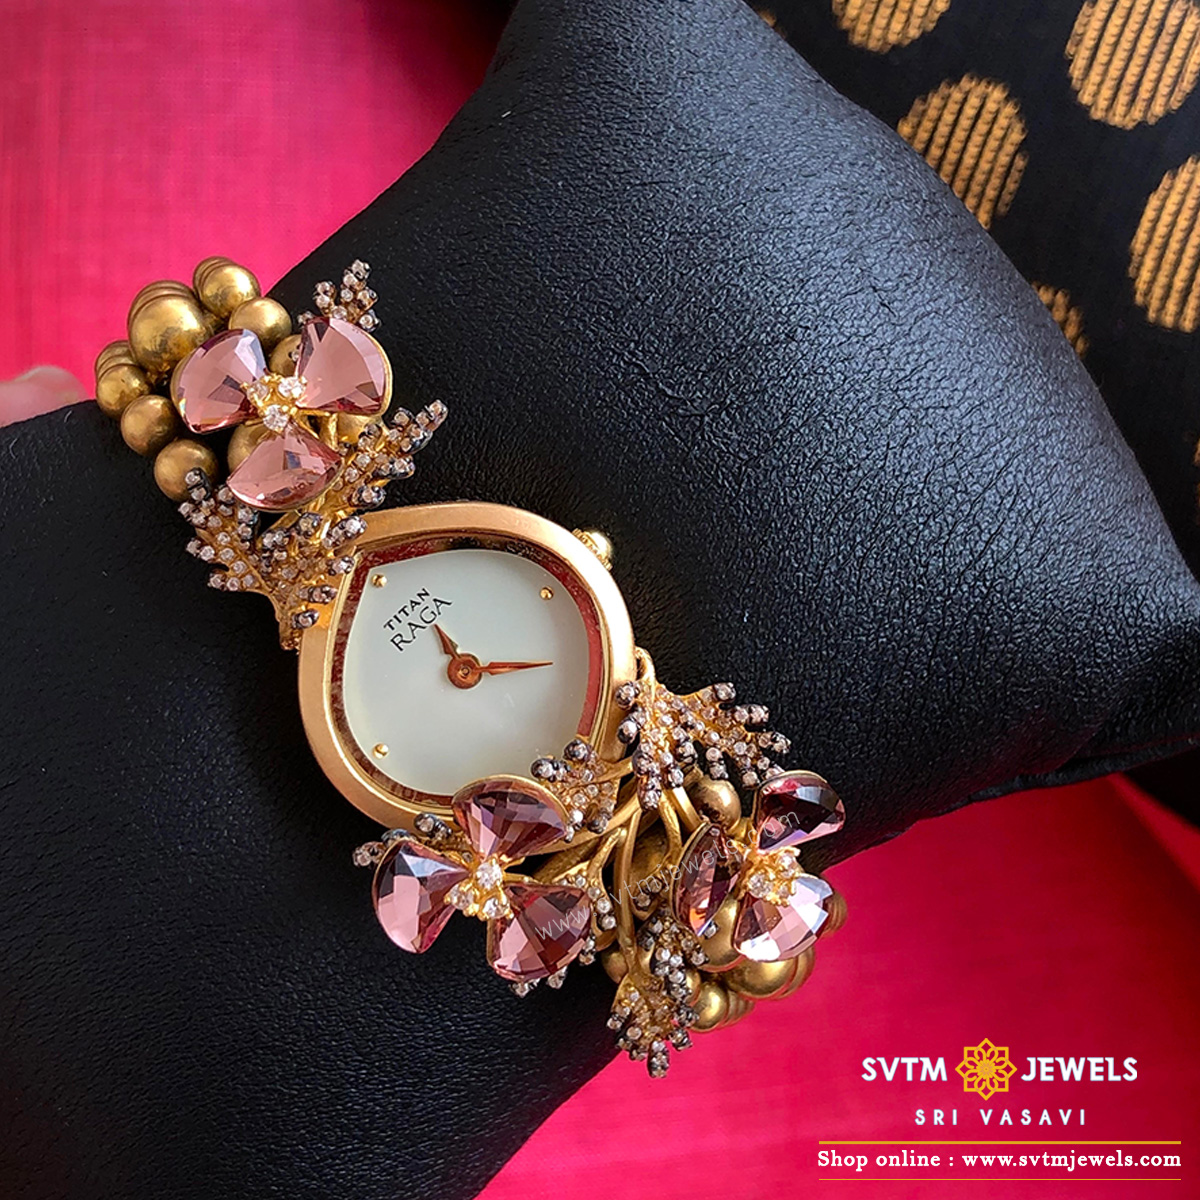 Buy Indian Gold Watches for Men and Women Online